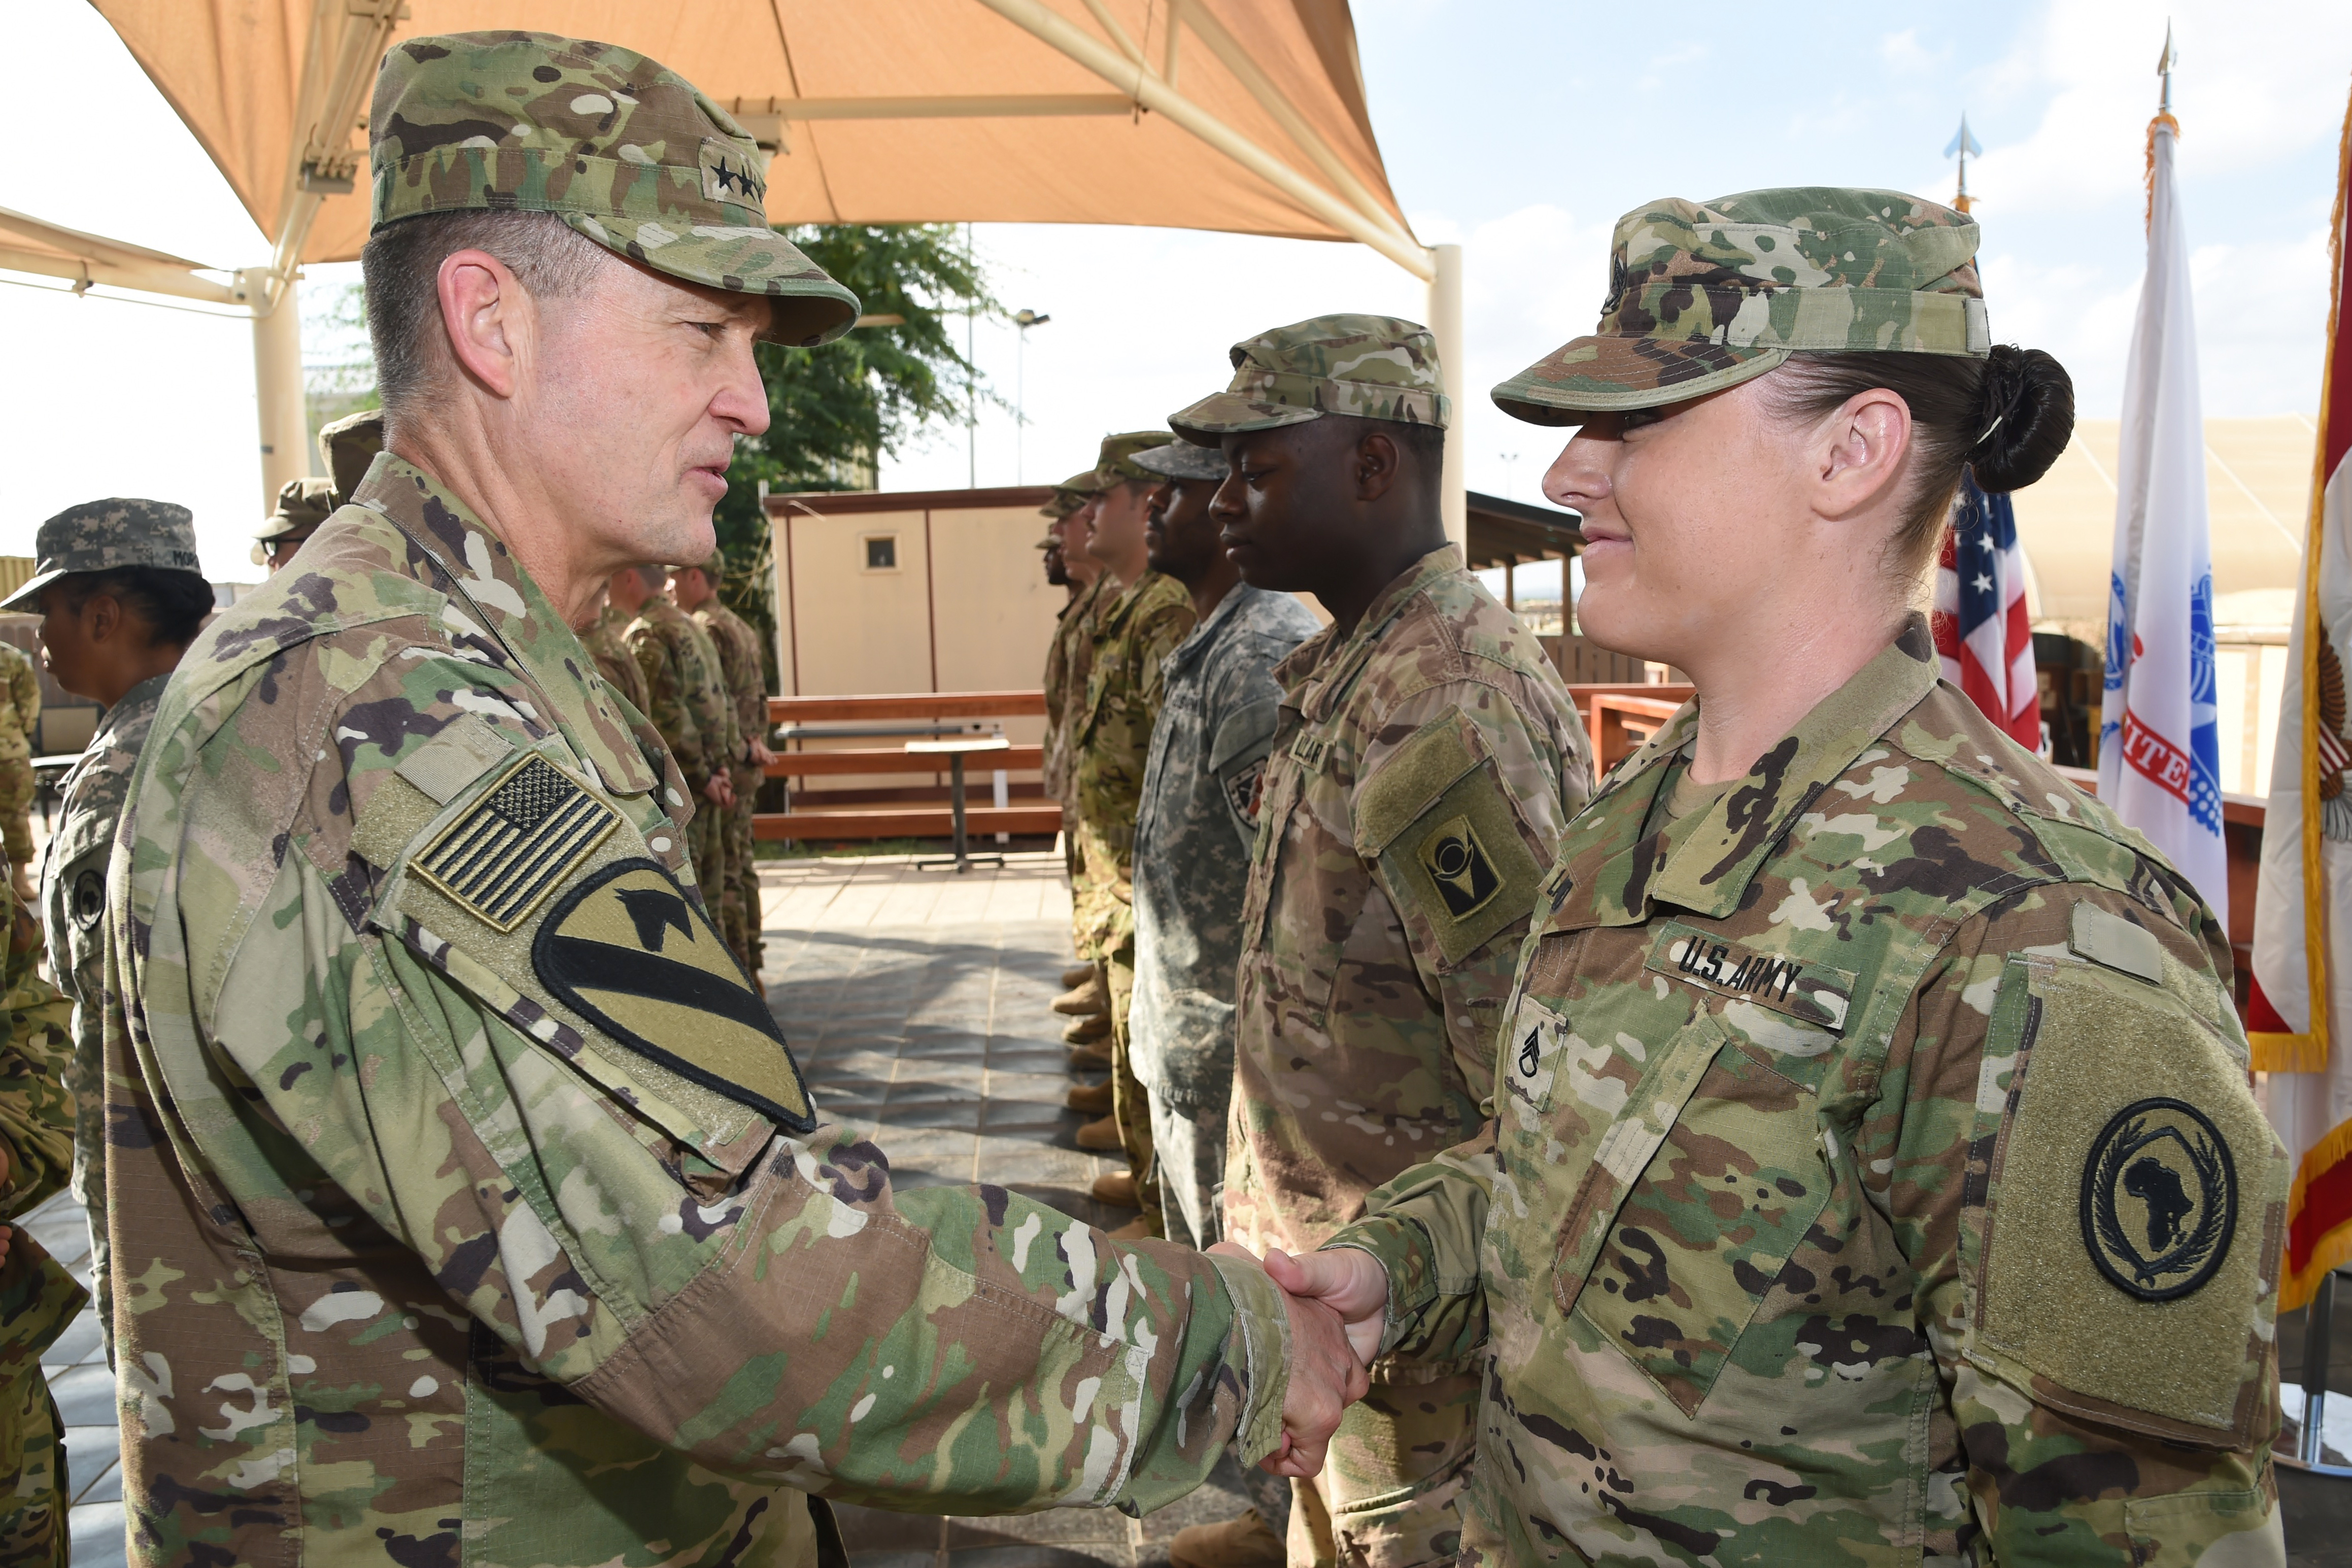 Vice Chief of Staff of the Army Gen. Daniel B. Allyn recognizes Army Staff Sgt. Kendra Langsford for outstanding performance as an intelligence noncommissioned officer at Camp Lemonnier, Djibouti, Jan. 16, 2017. Allen's visit included the opportunity to meet with leadership to discuss on-going operations and challenges in the region, as well as recognize numerous deployed service members for outstanding performance in support of Camp Lemonnier, and Combined Joint Task Force-Horn of Africa. (U.S. Air National Guard photo by Master Sgt. Paul Gorman)